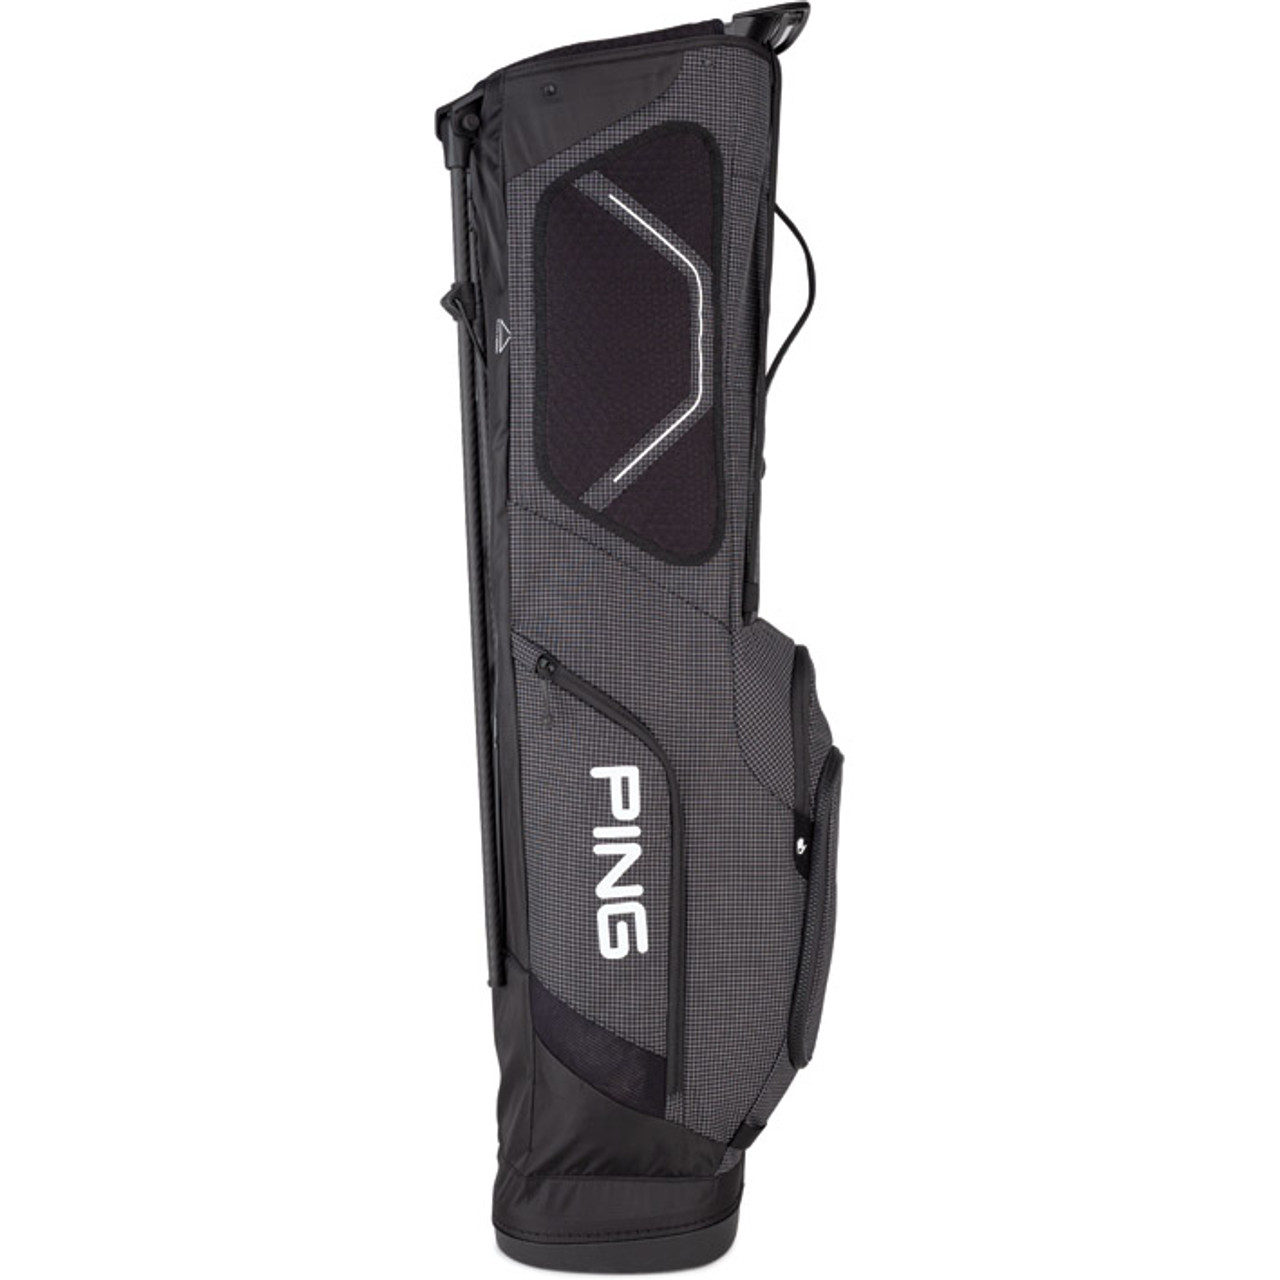 PING Hoofer Craz-E Lite Personalized Stand Bags